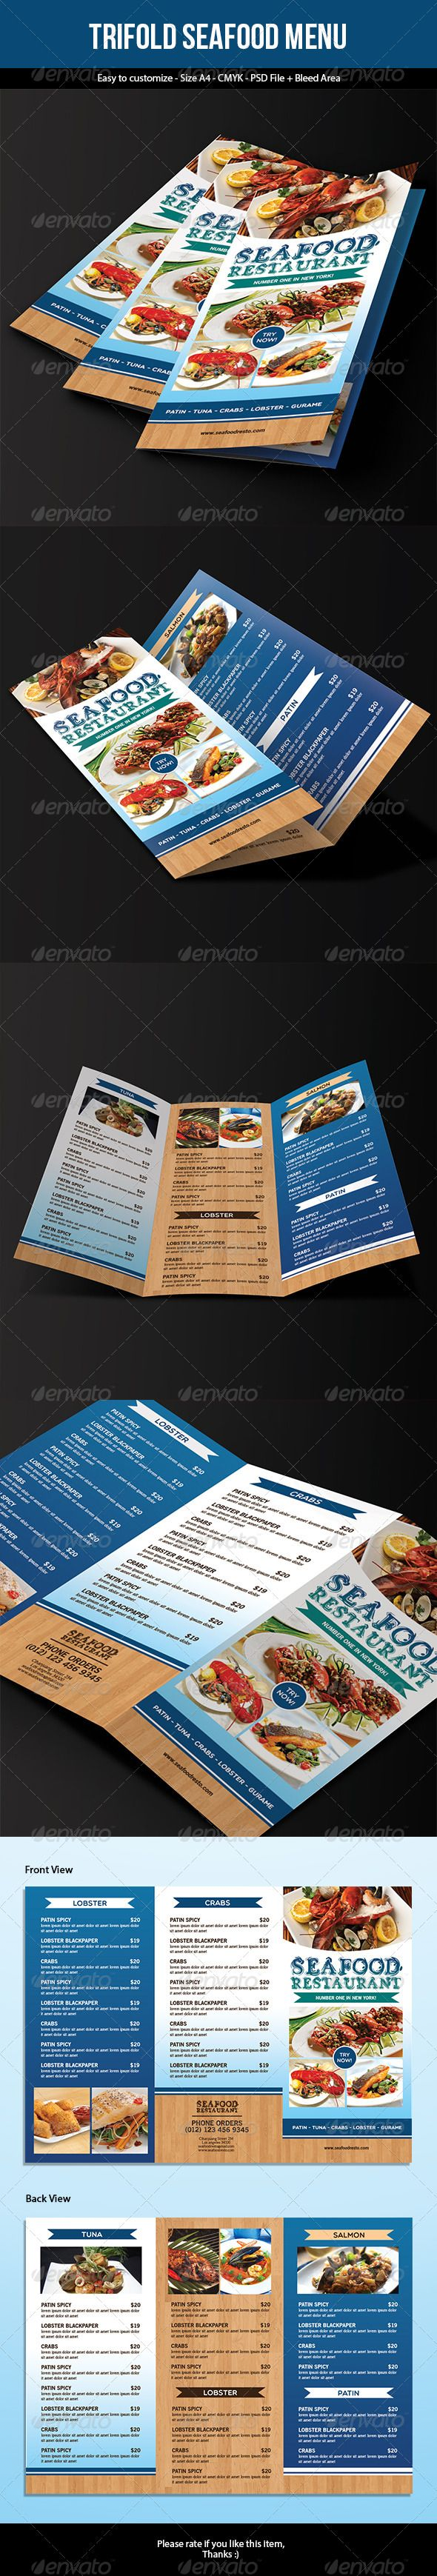 Trifold Seafood Menu Template #design Download: http://graphicriver.net/item/trifold-seafood-menu/7320600?ref=ksioks